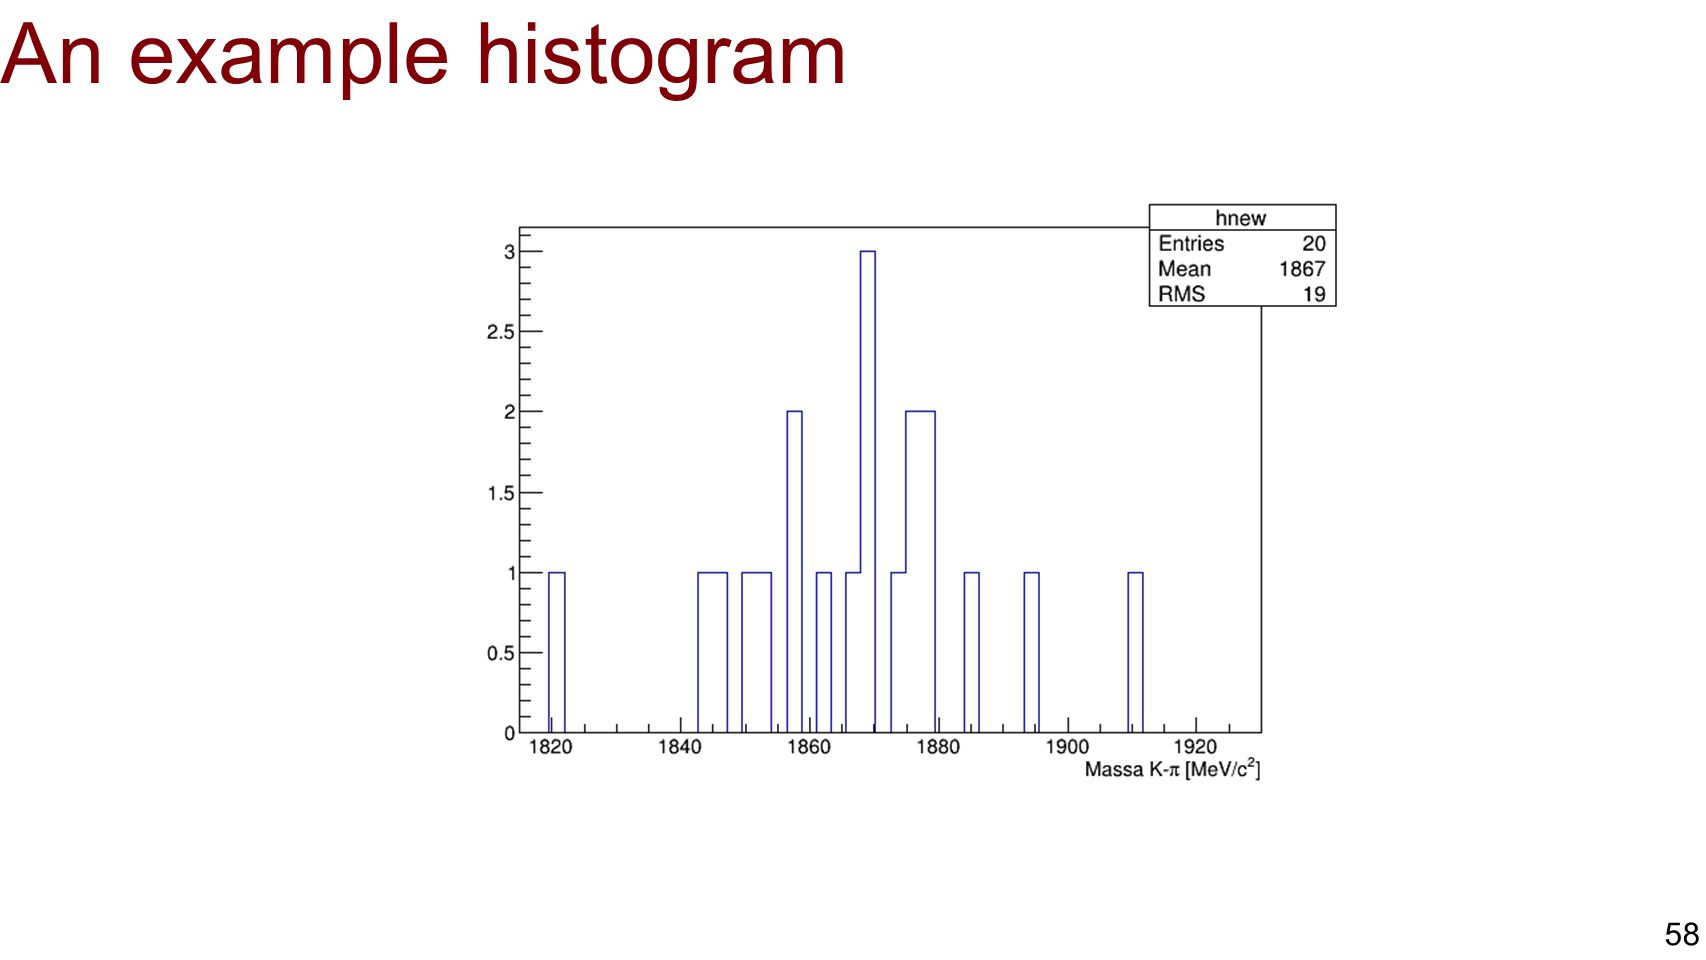 An example histogram